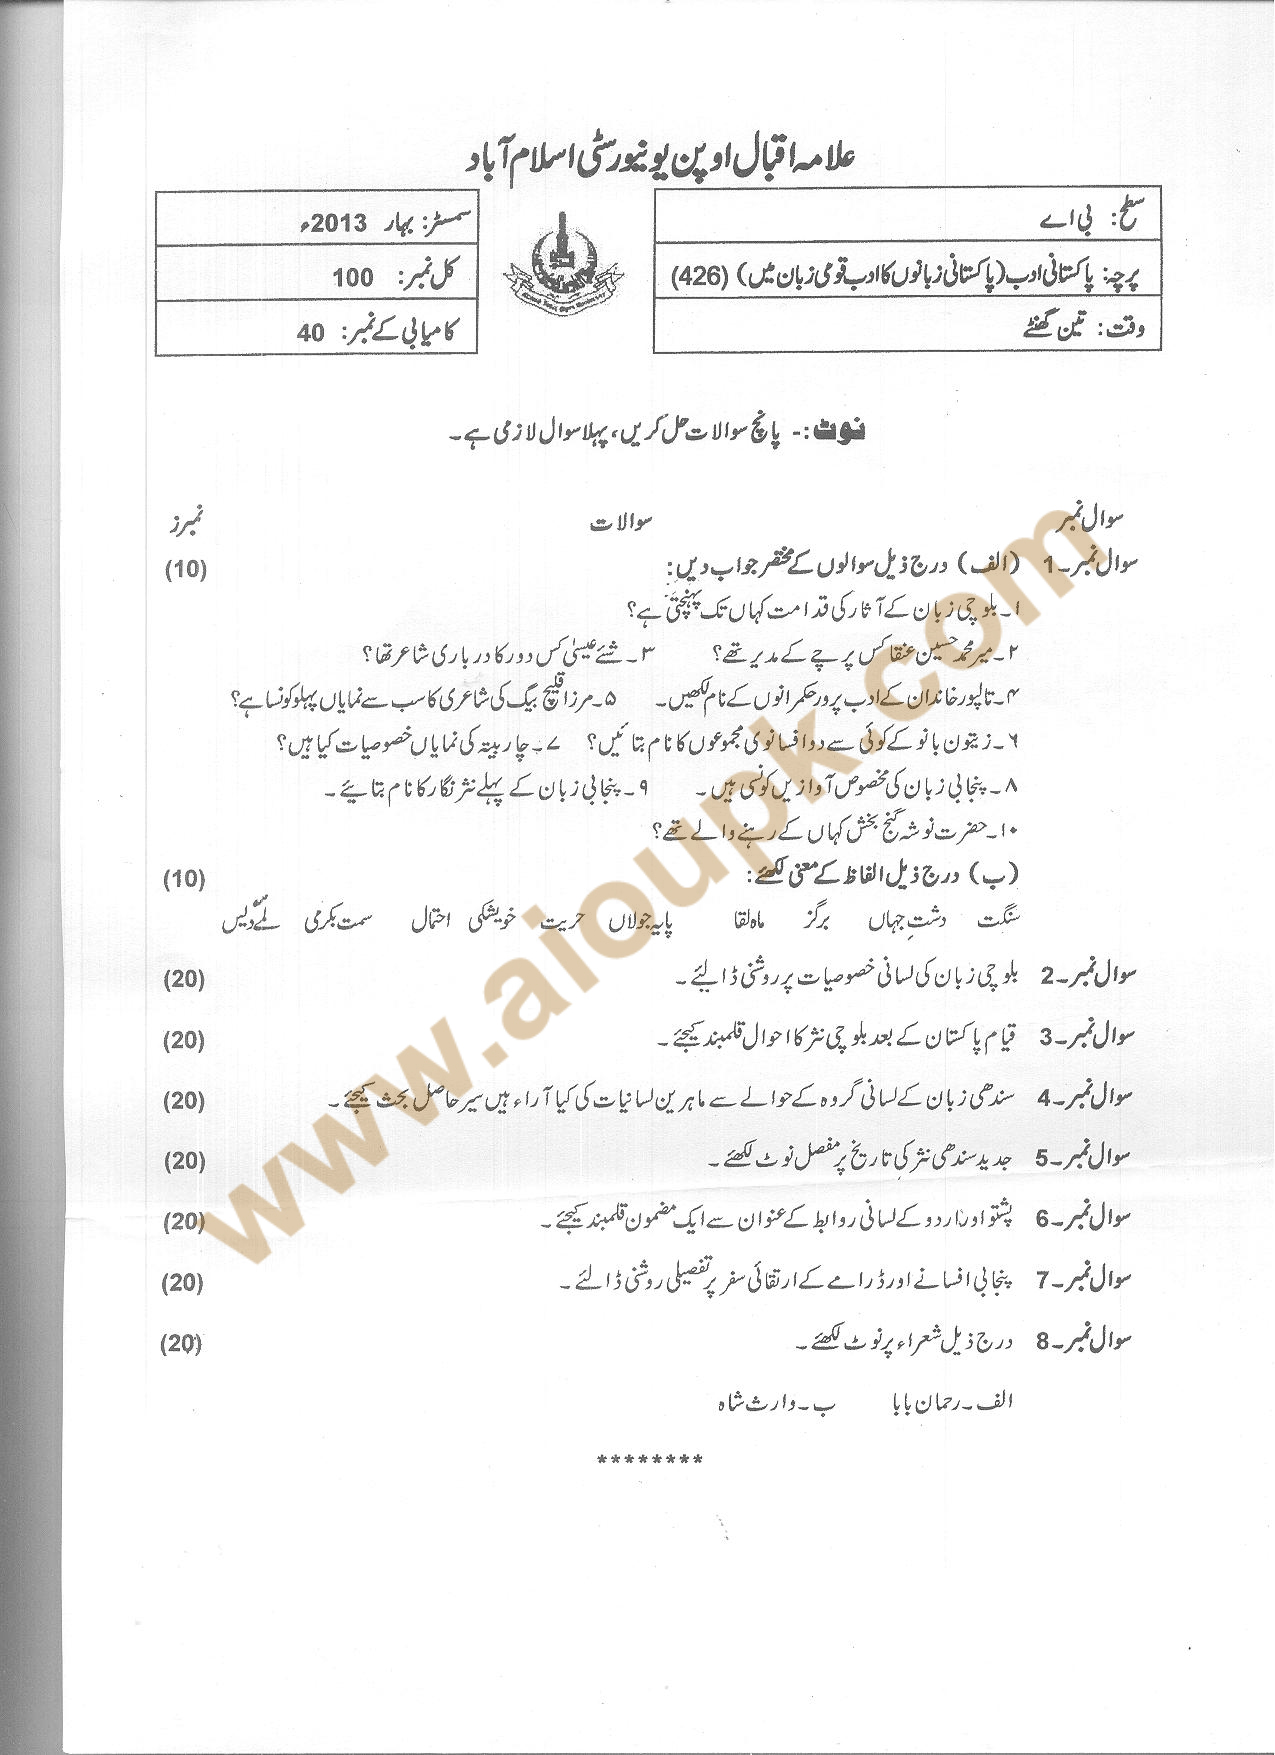 AIOU Old Papers Code: 364